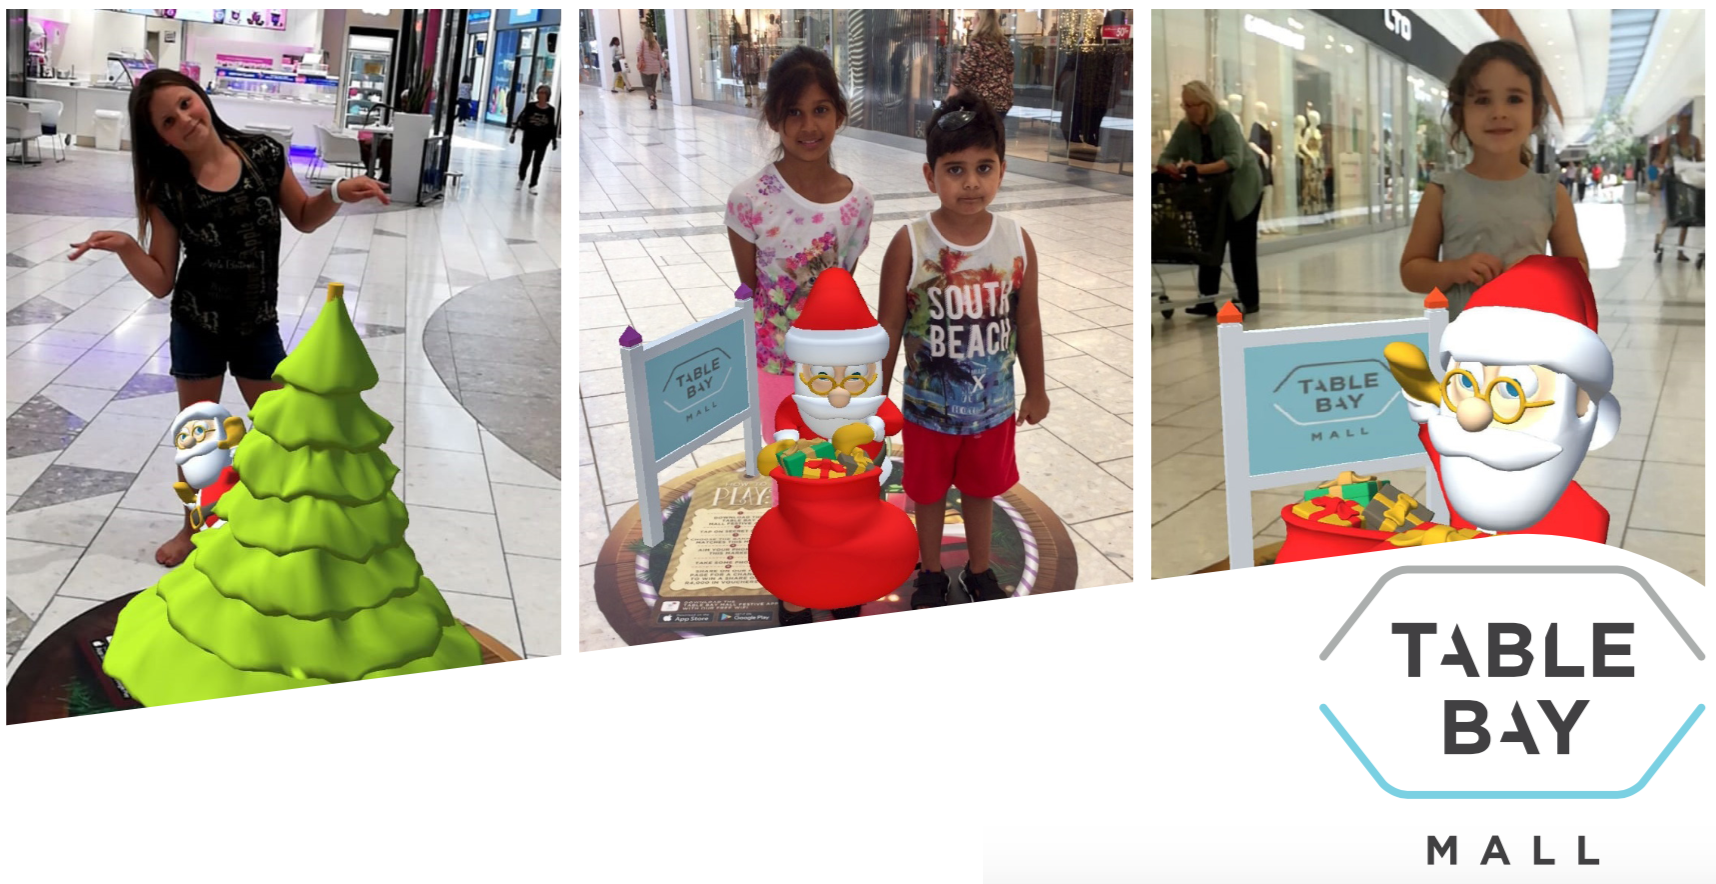 augmented reality ar santa claus table bay mall festive app digital marketing the blue room cape town south africa